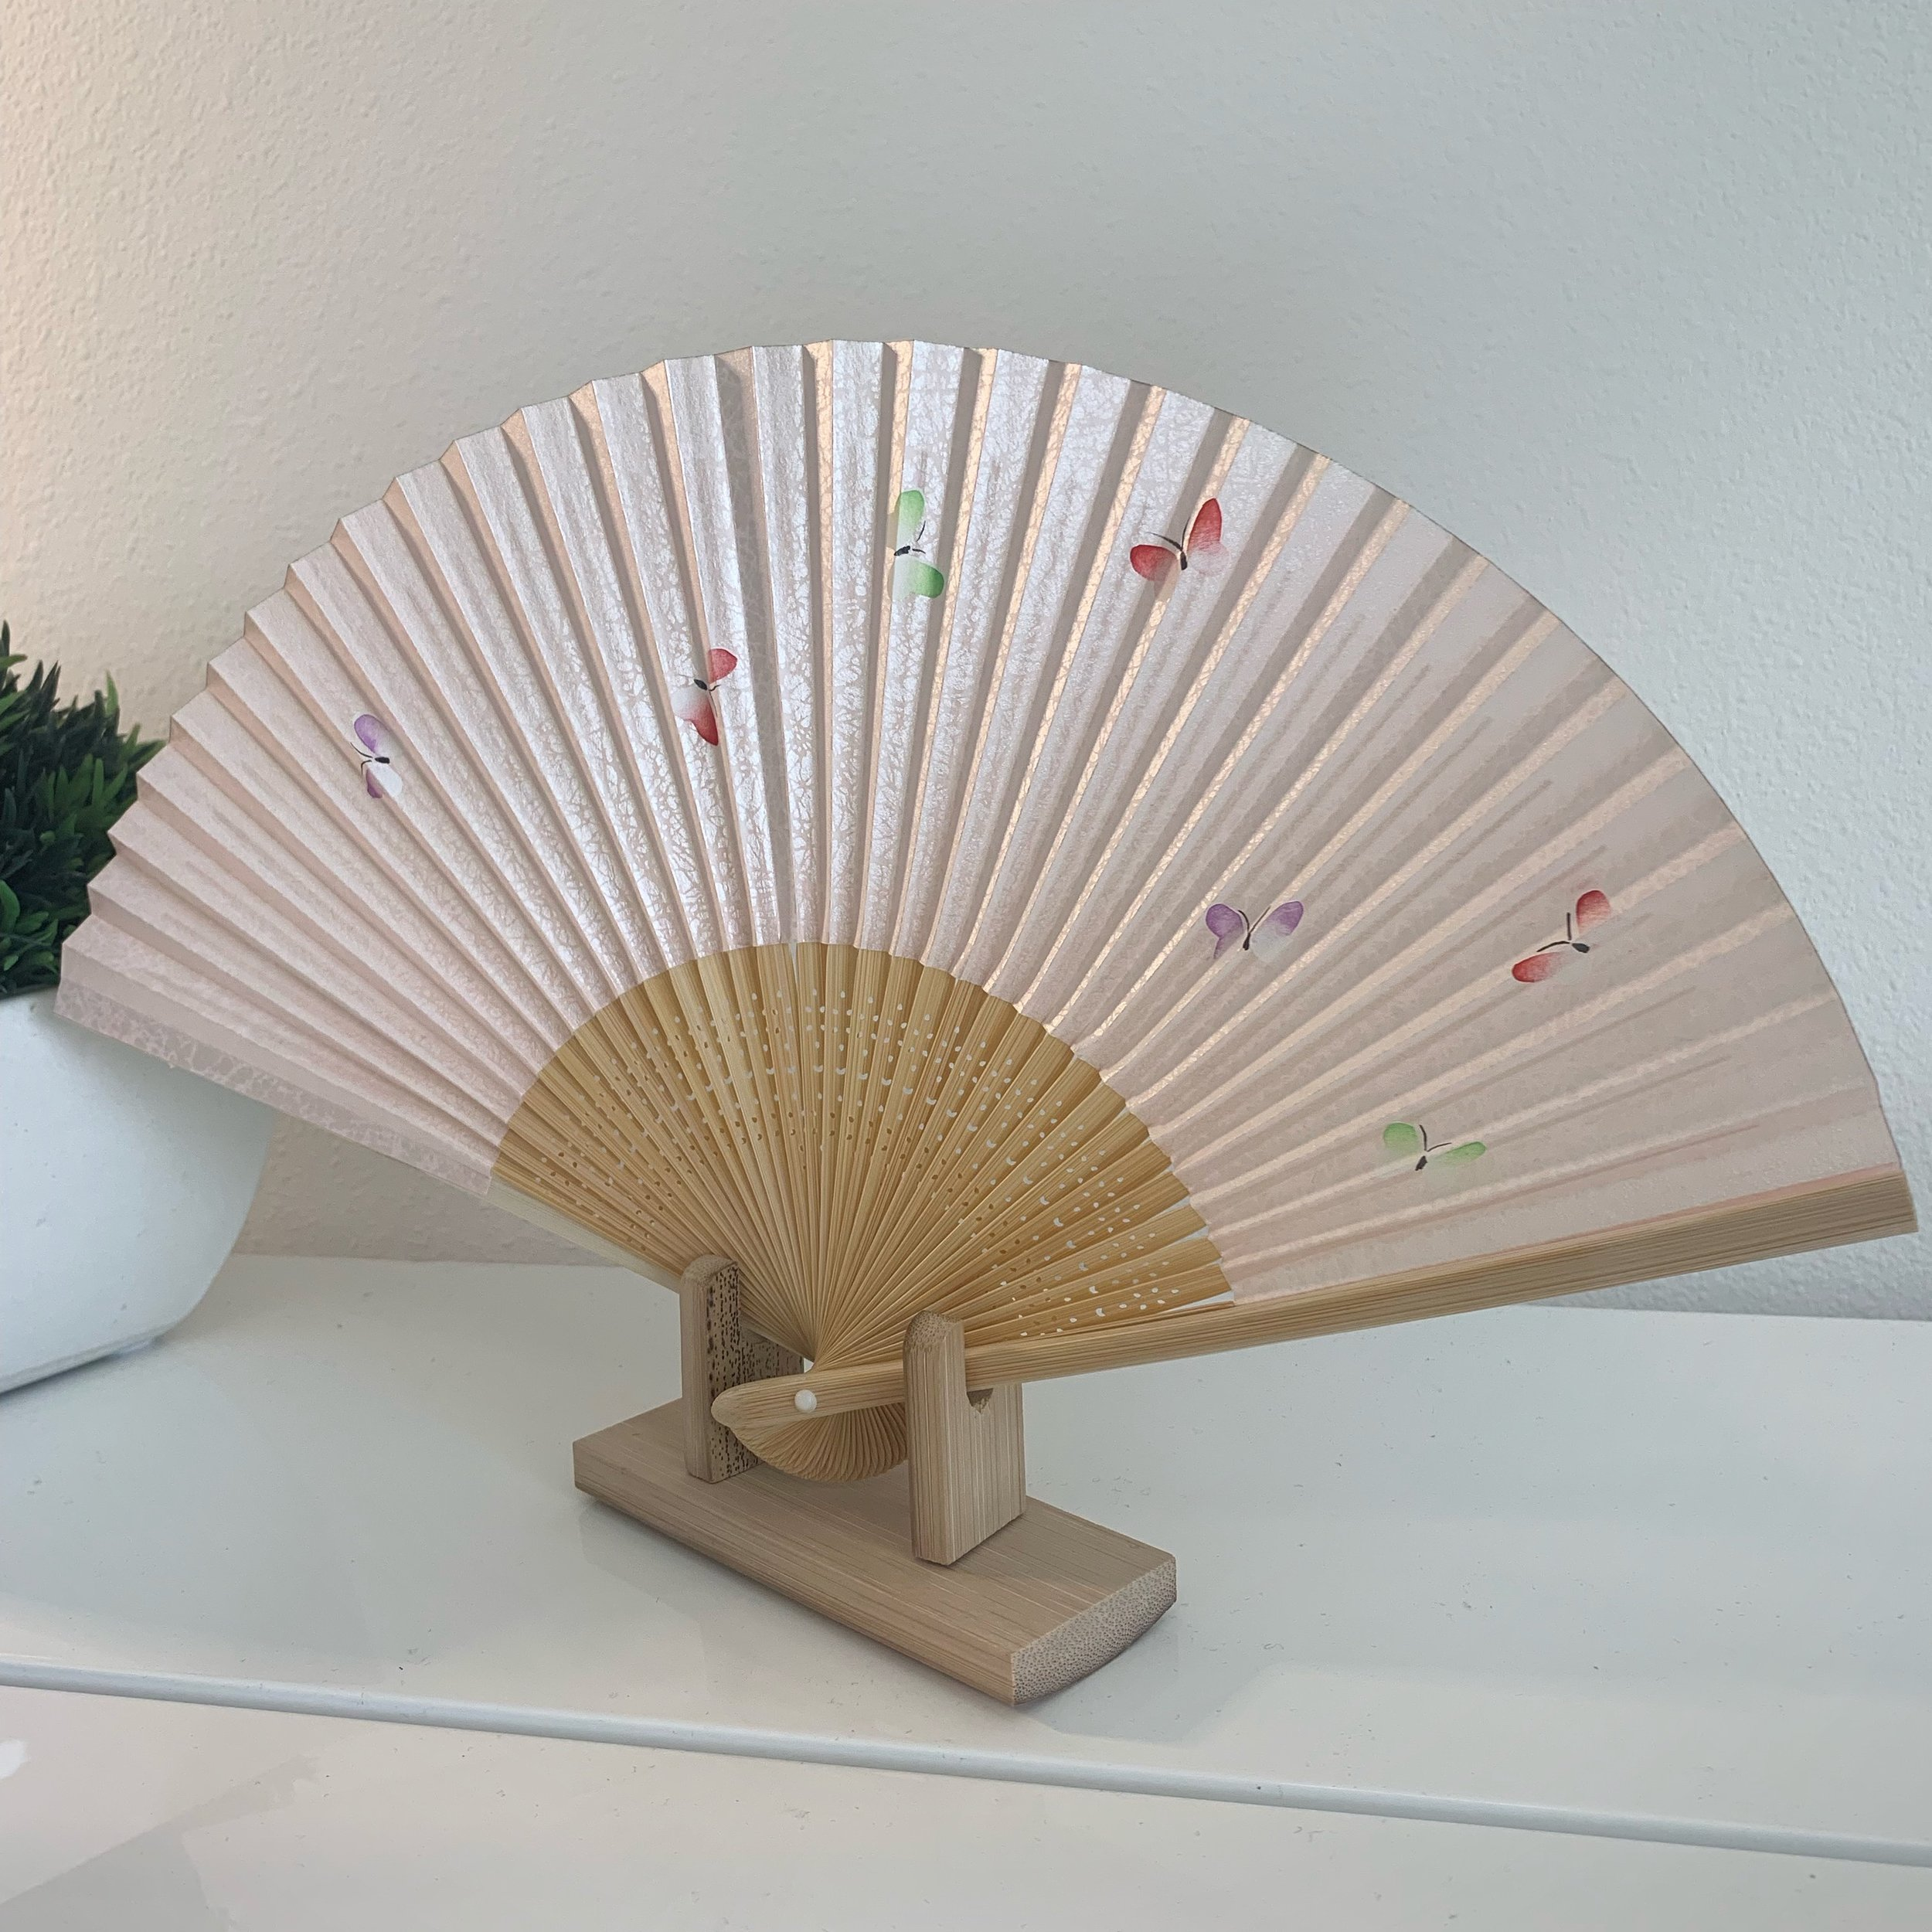 These beautiful fans make great gifts!